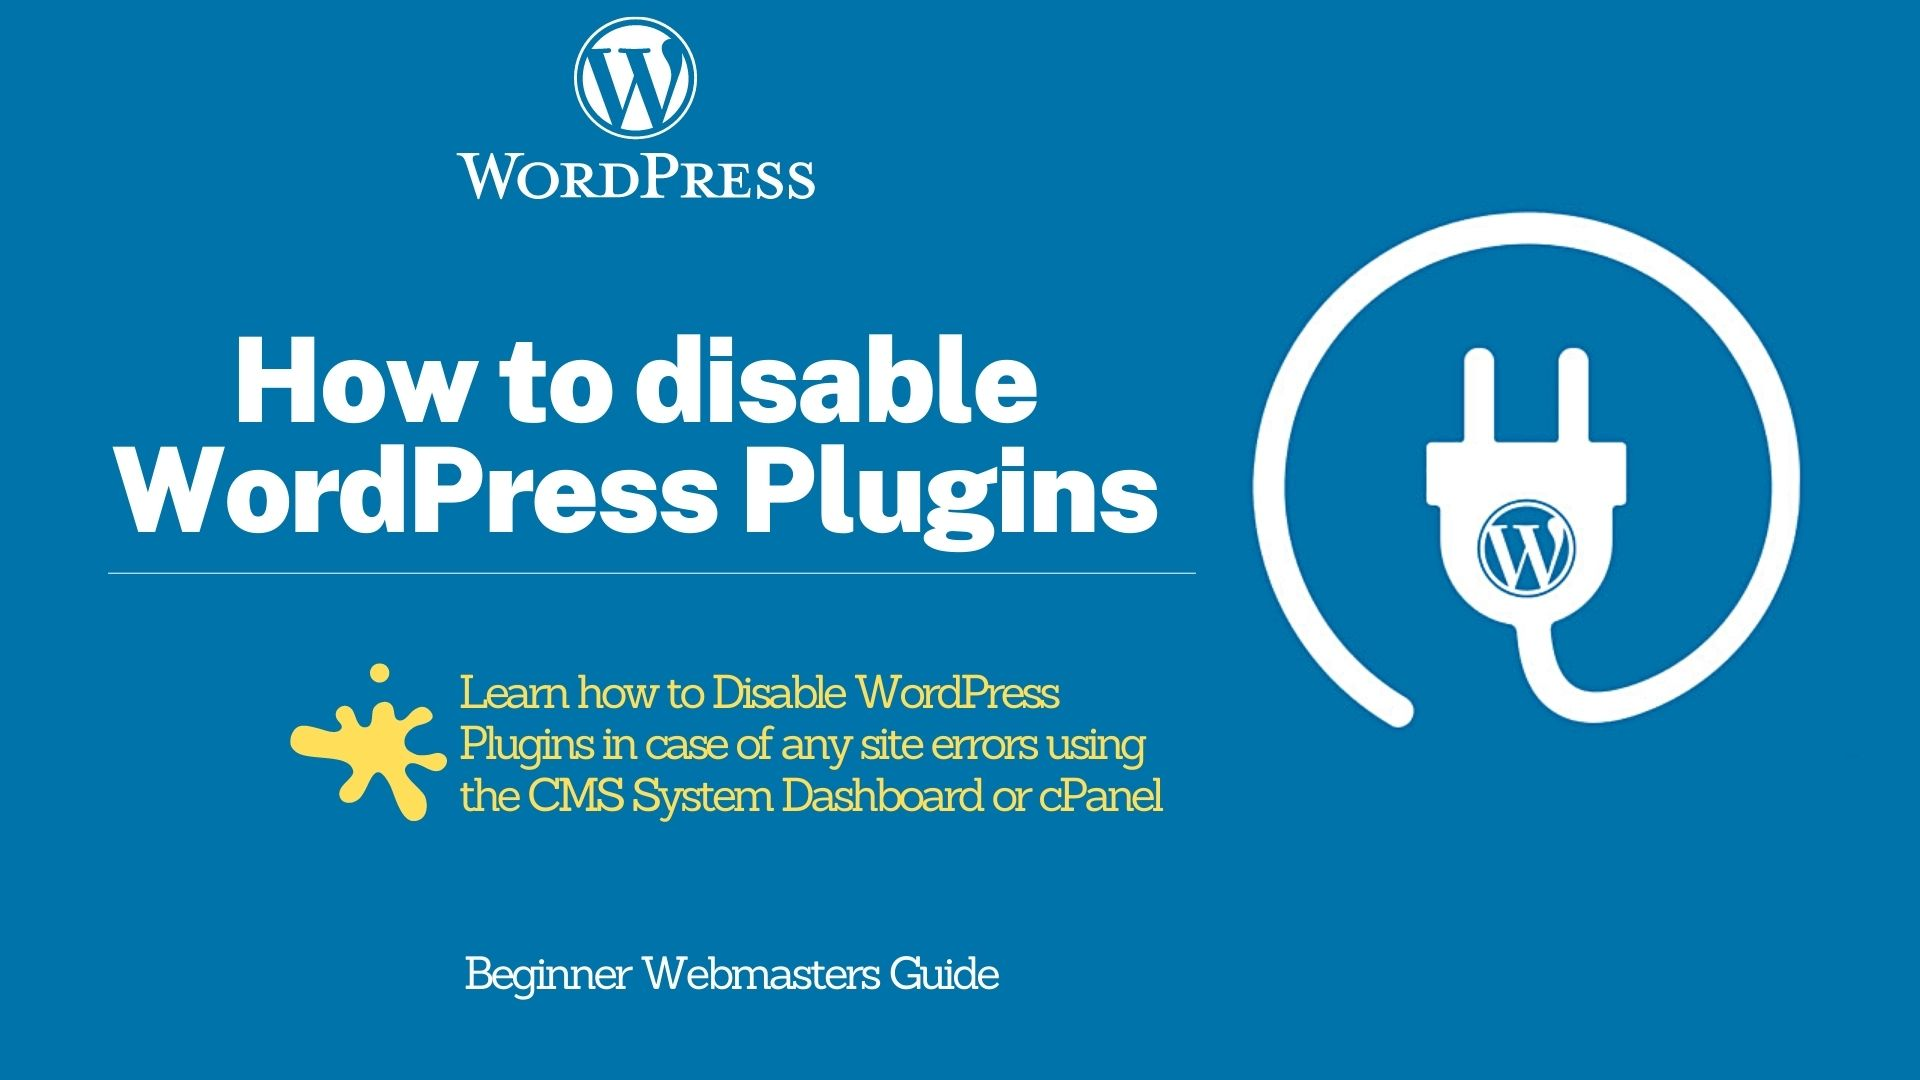 How to Disable WordPress Plugins